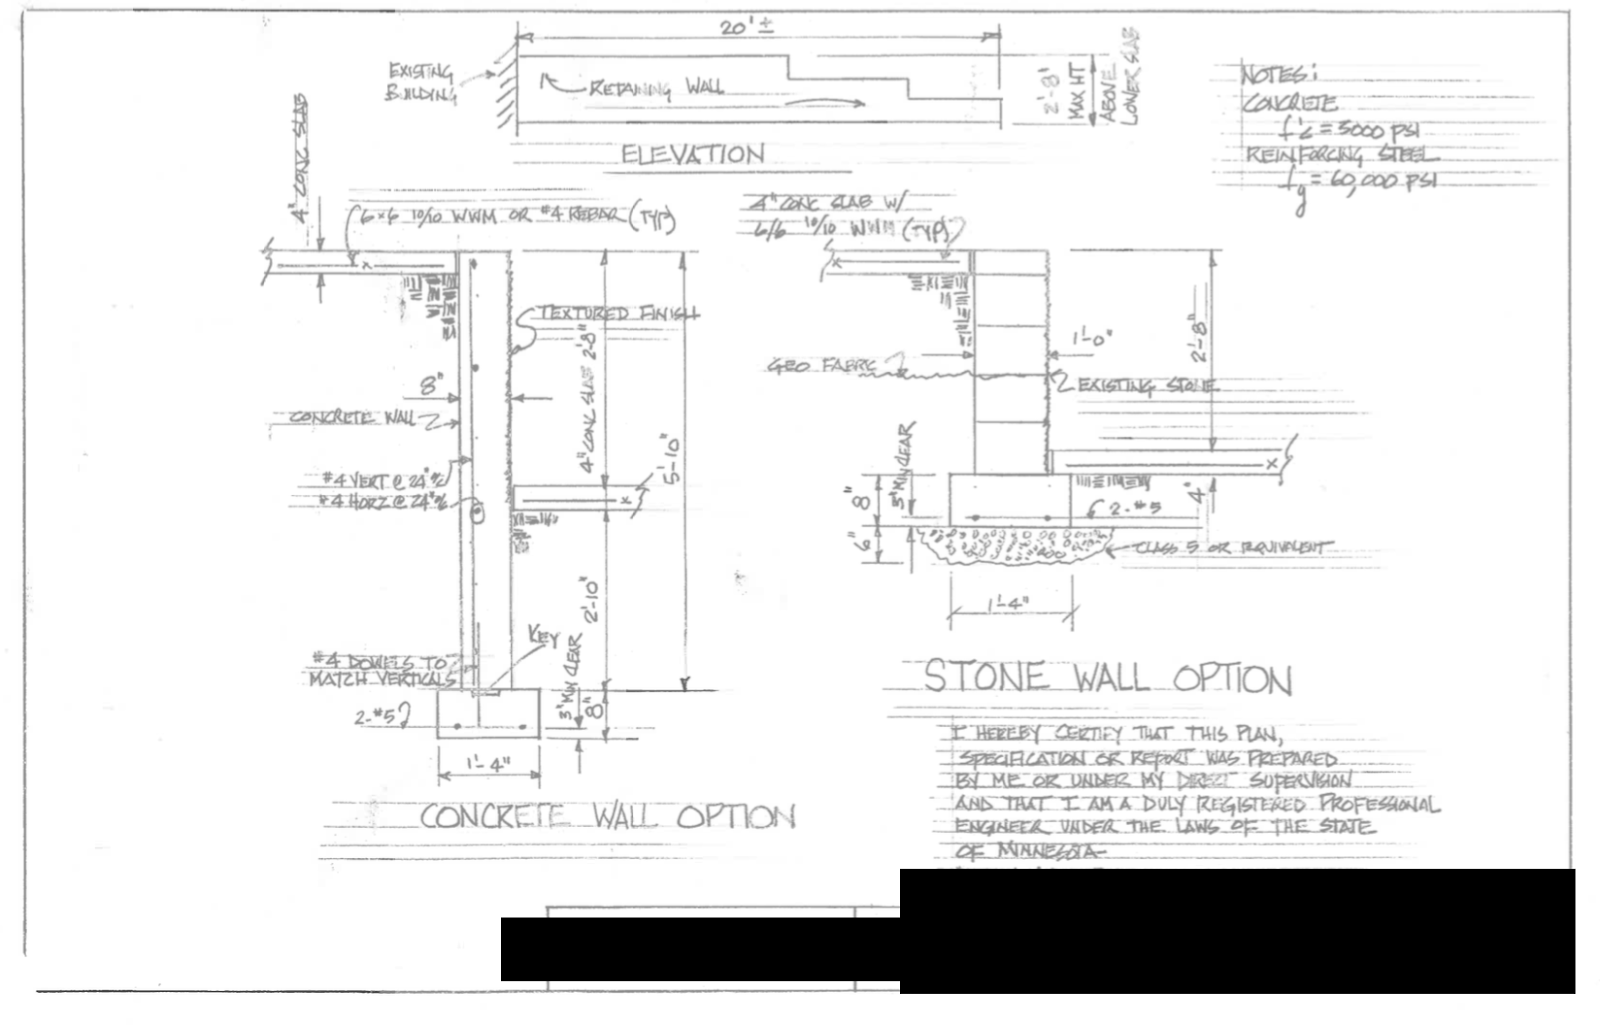 Example of structural engineering plan for retaining wall